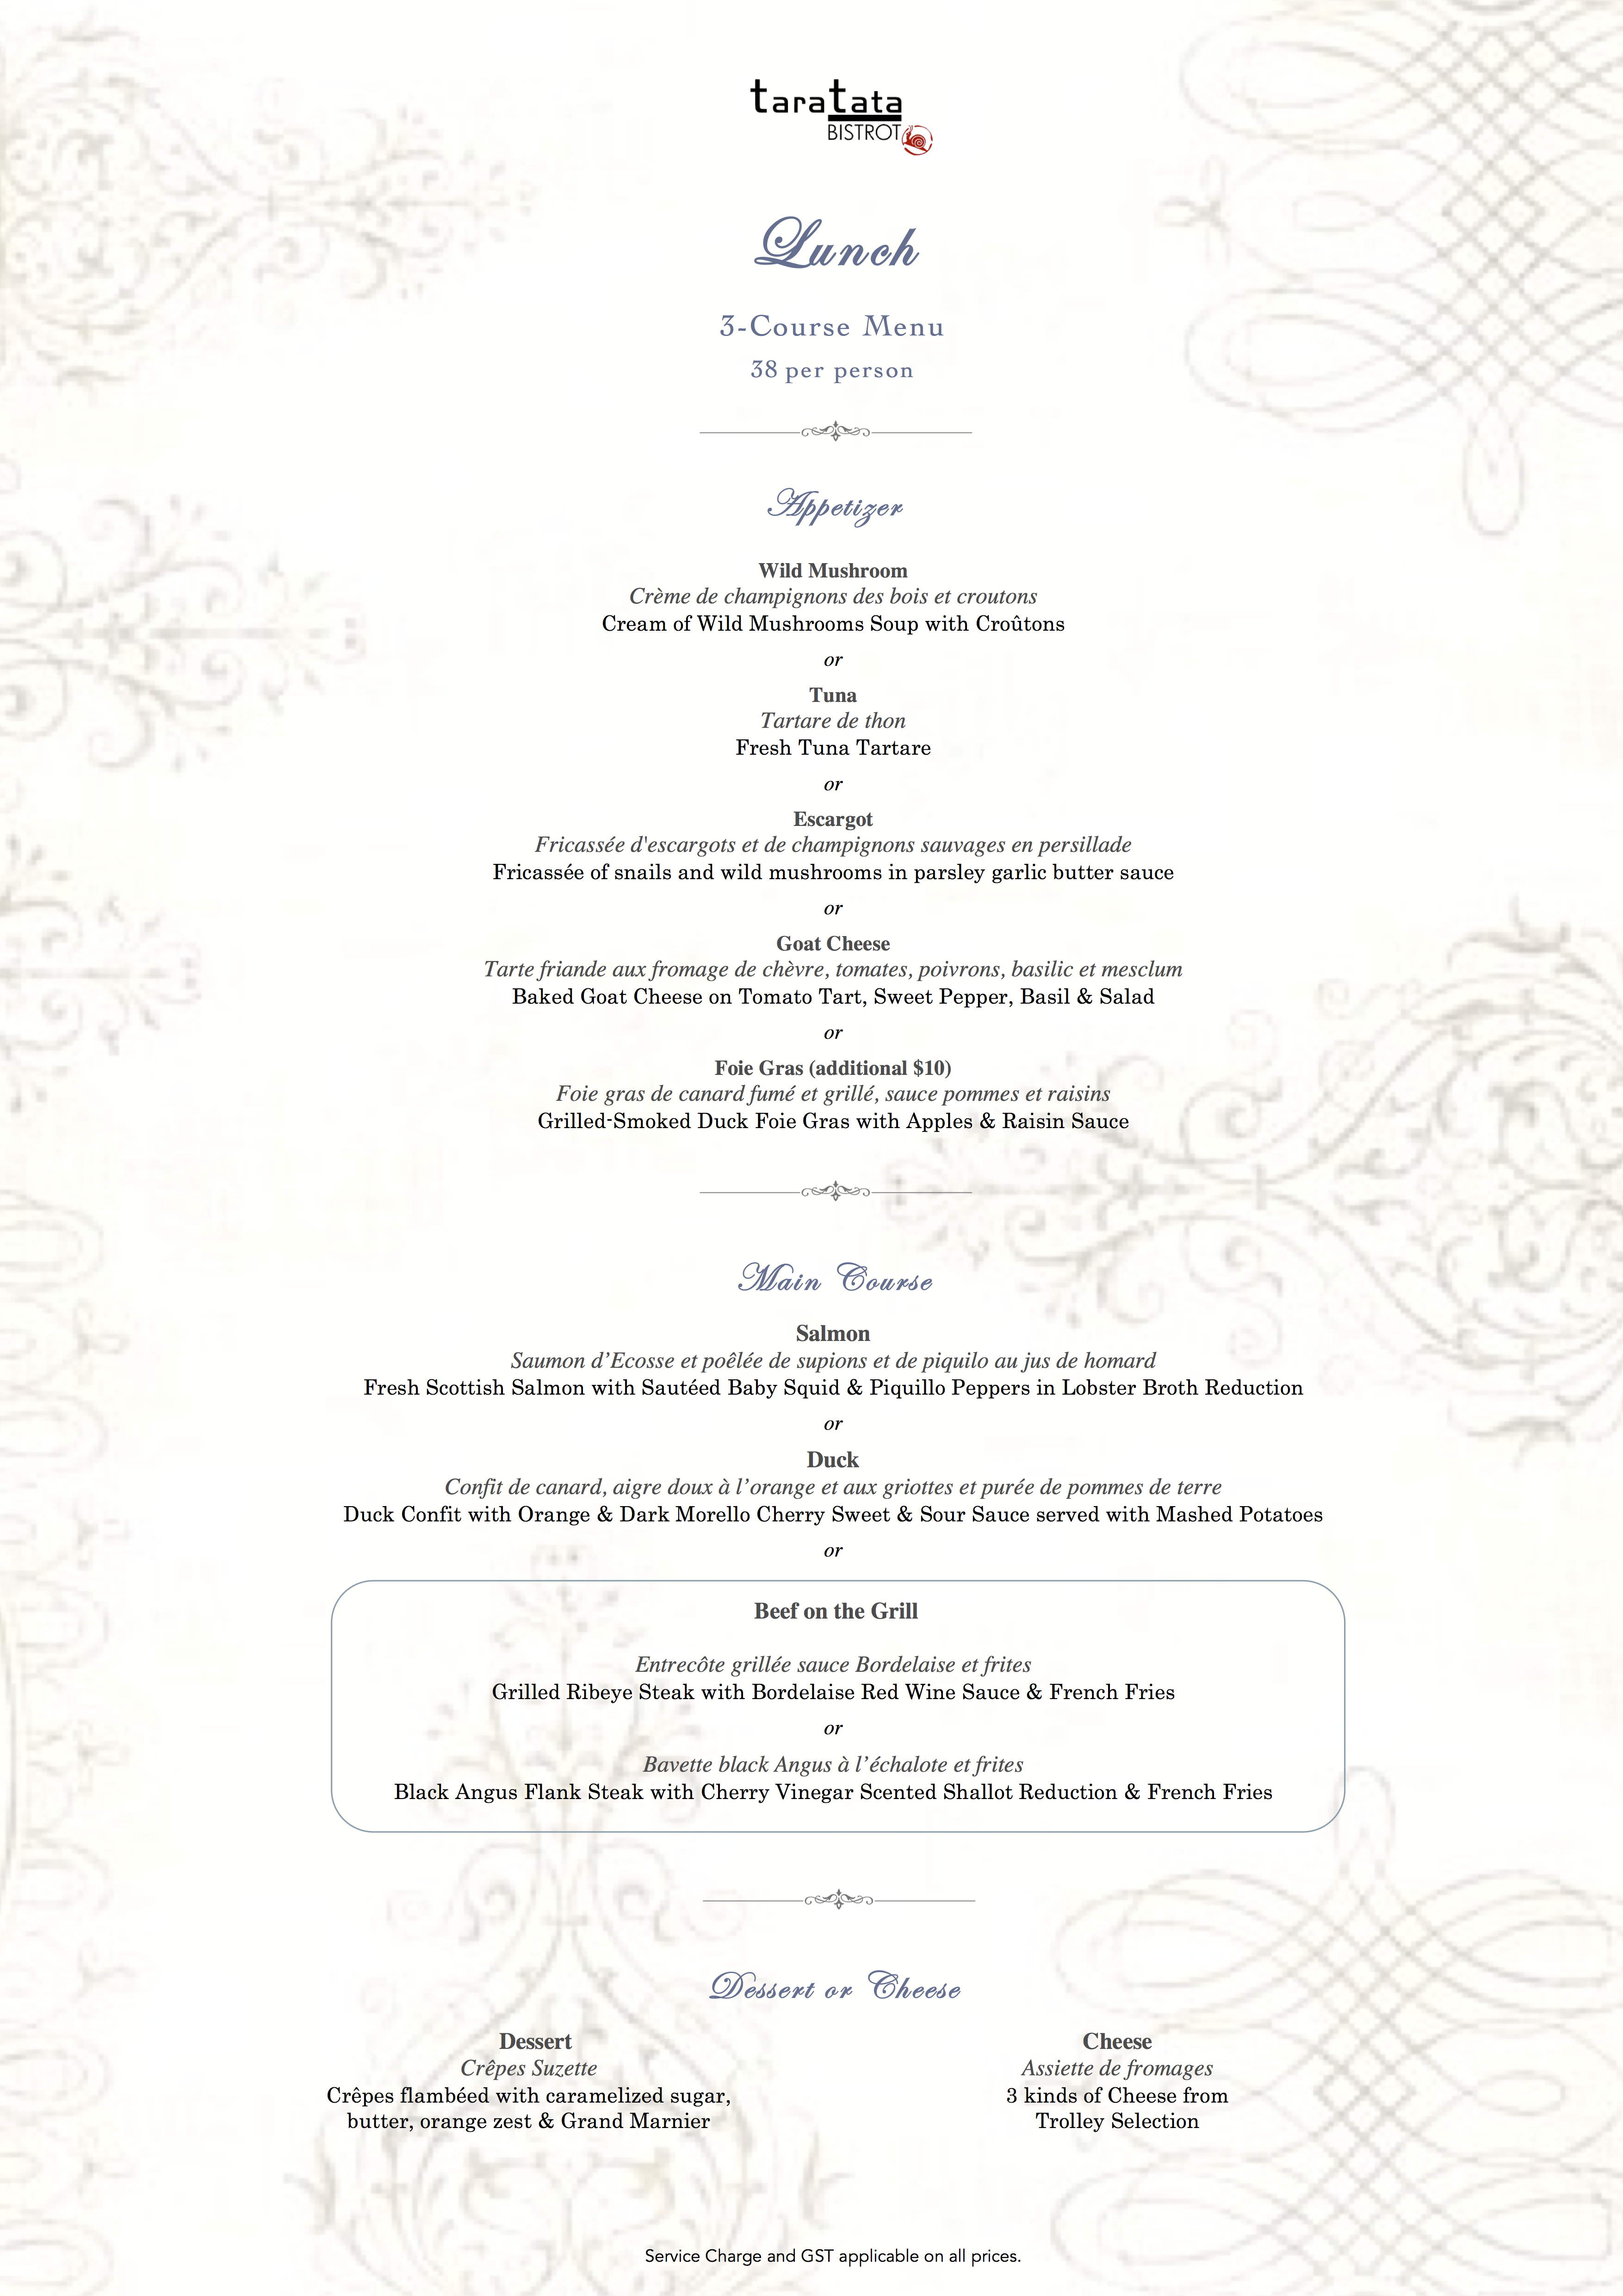 3-Course Lunch $38